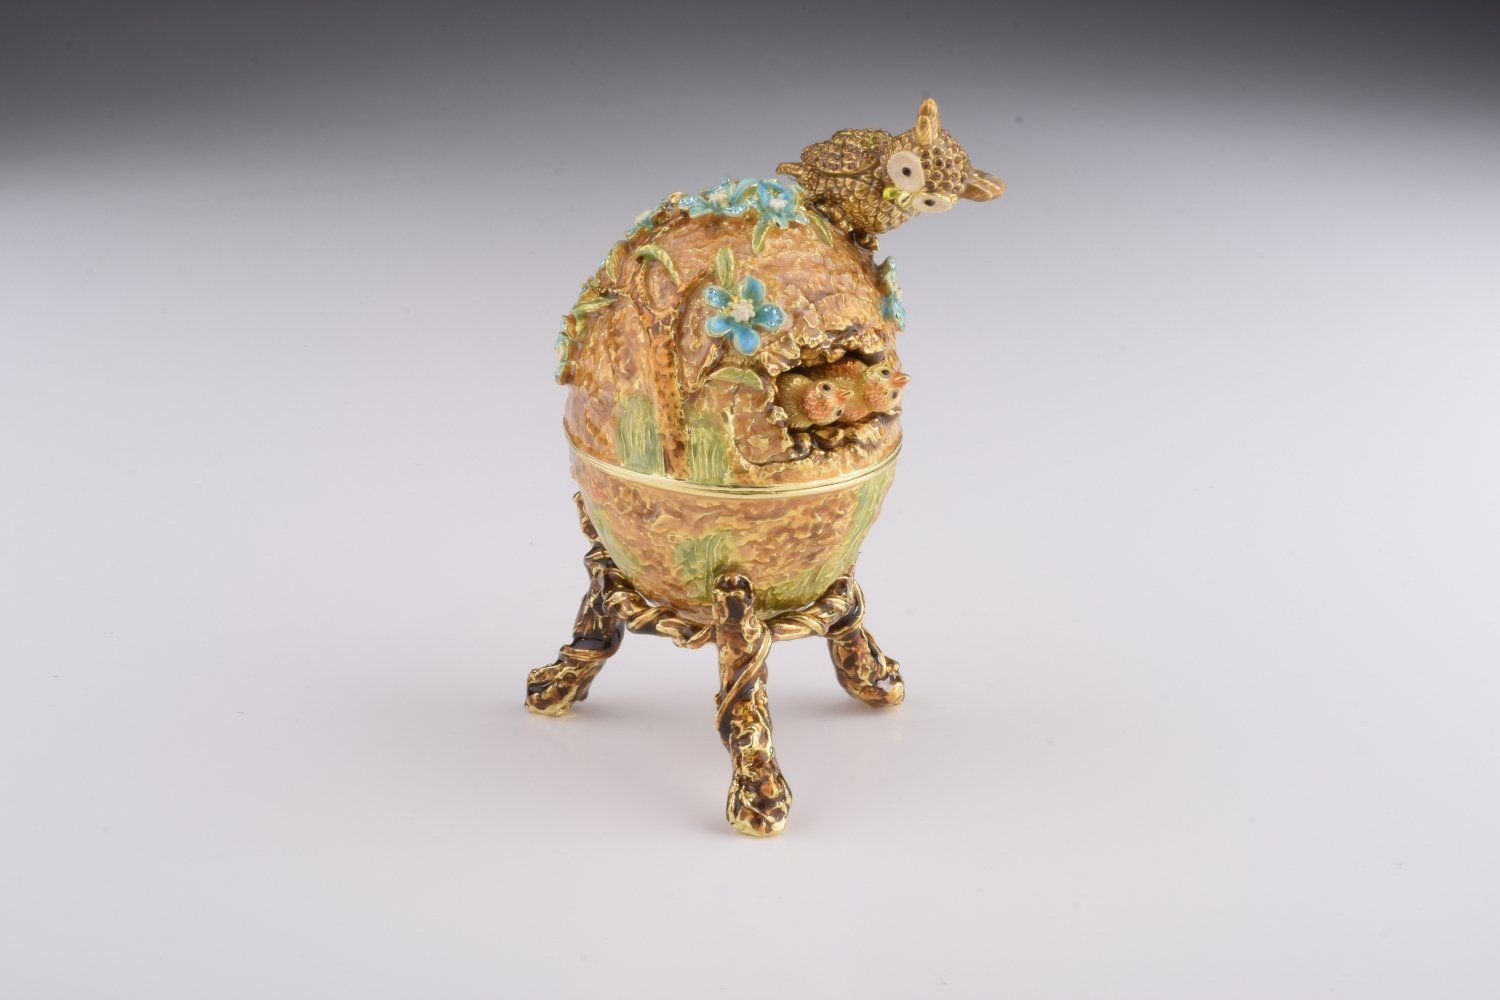 Brown Faberge Egg with Owls Nest